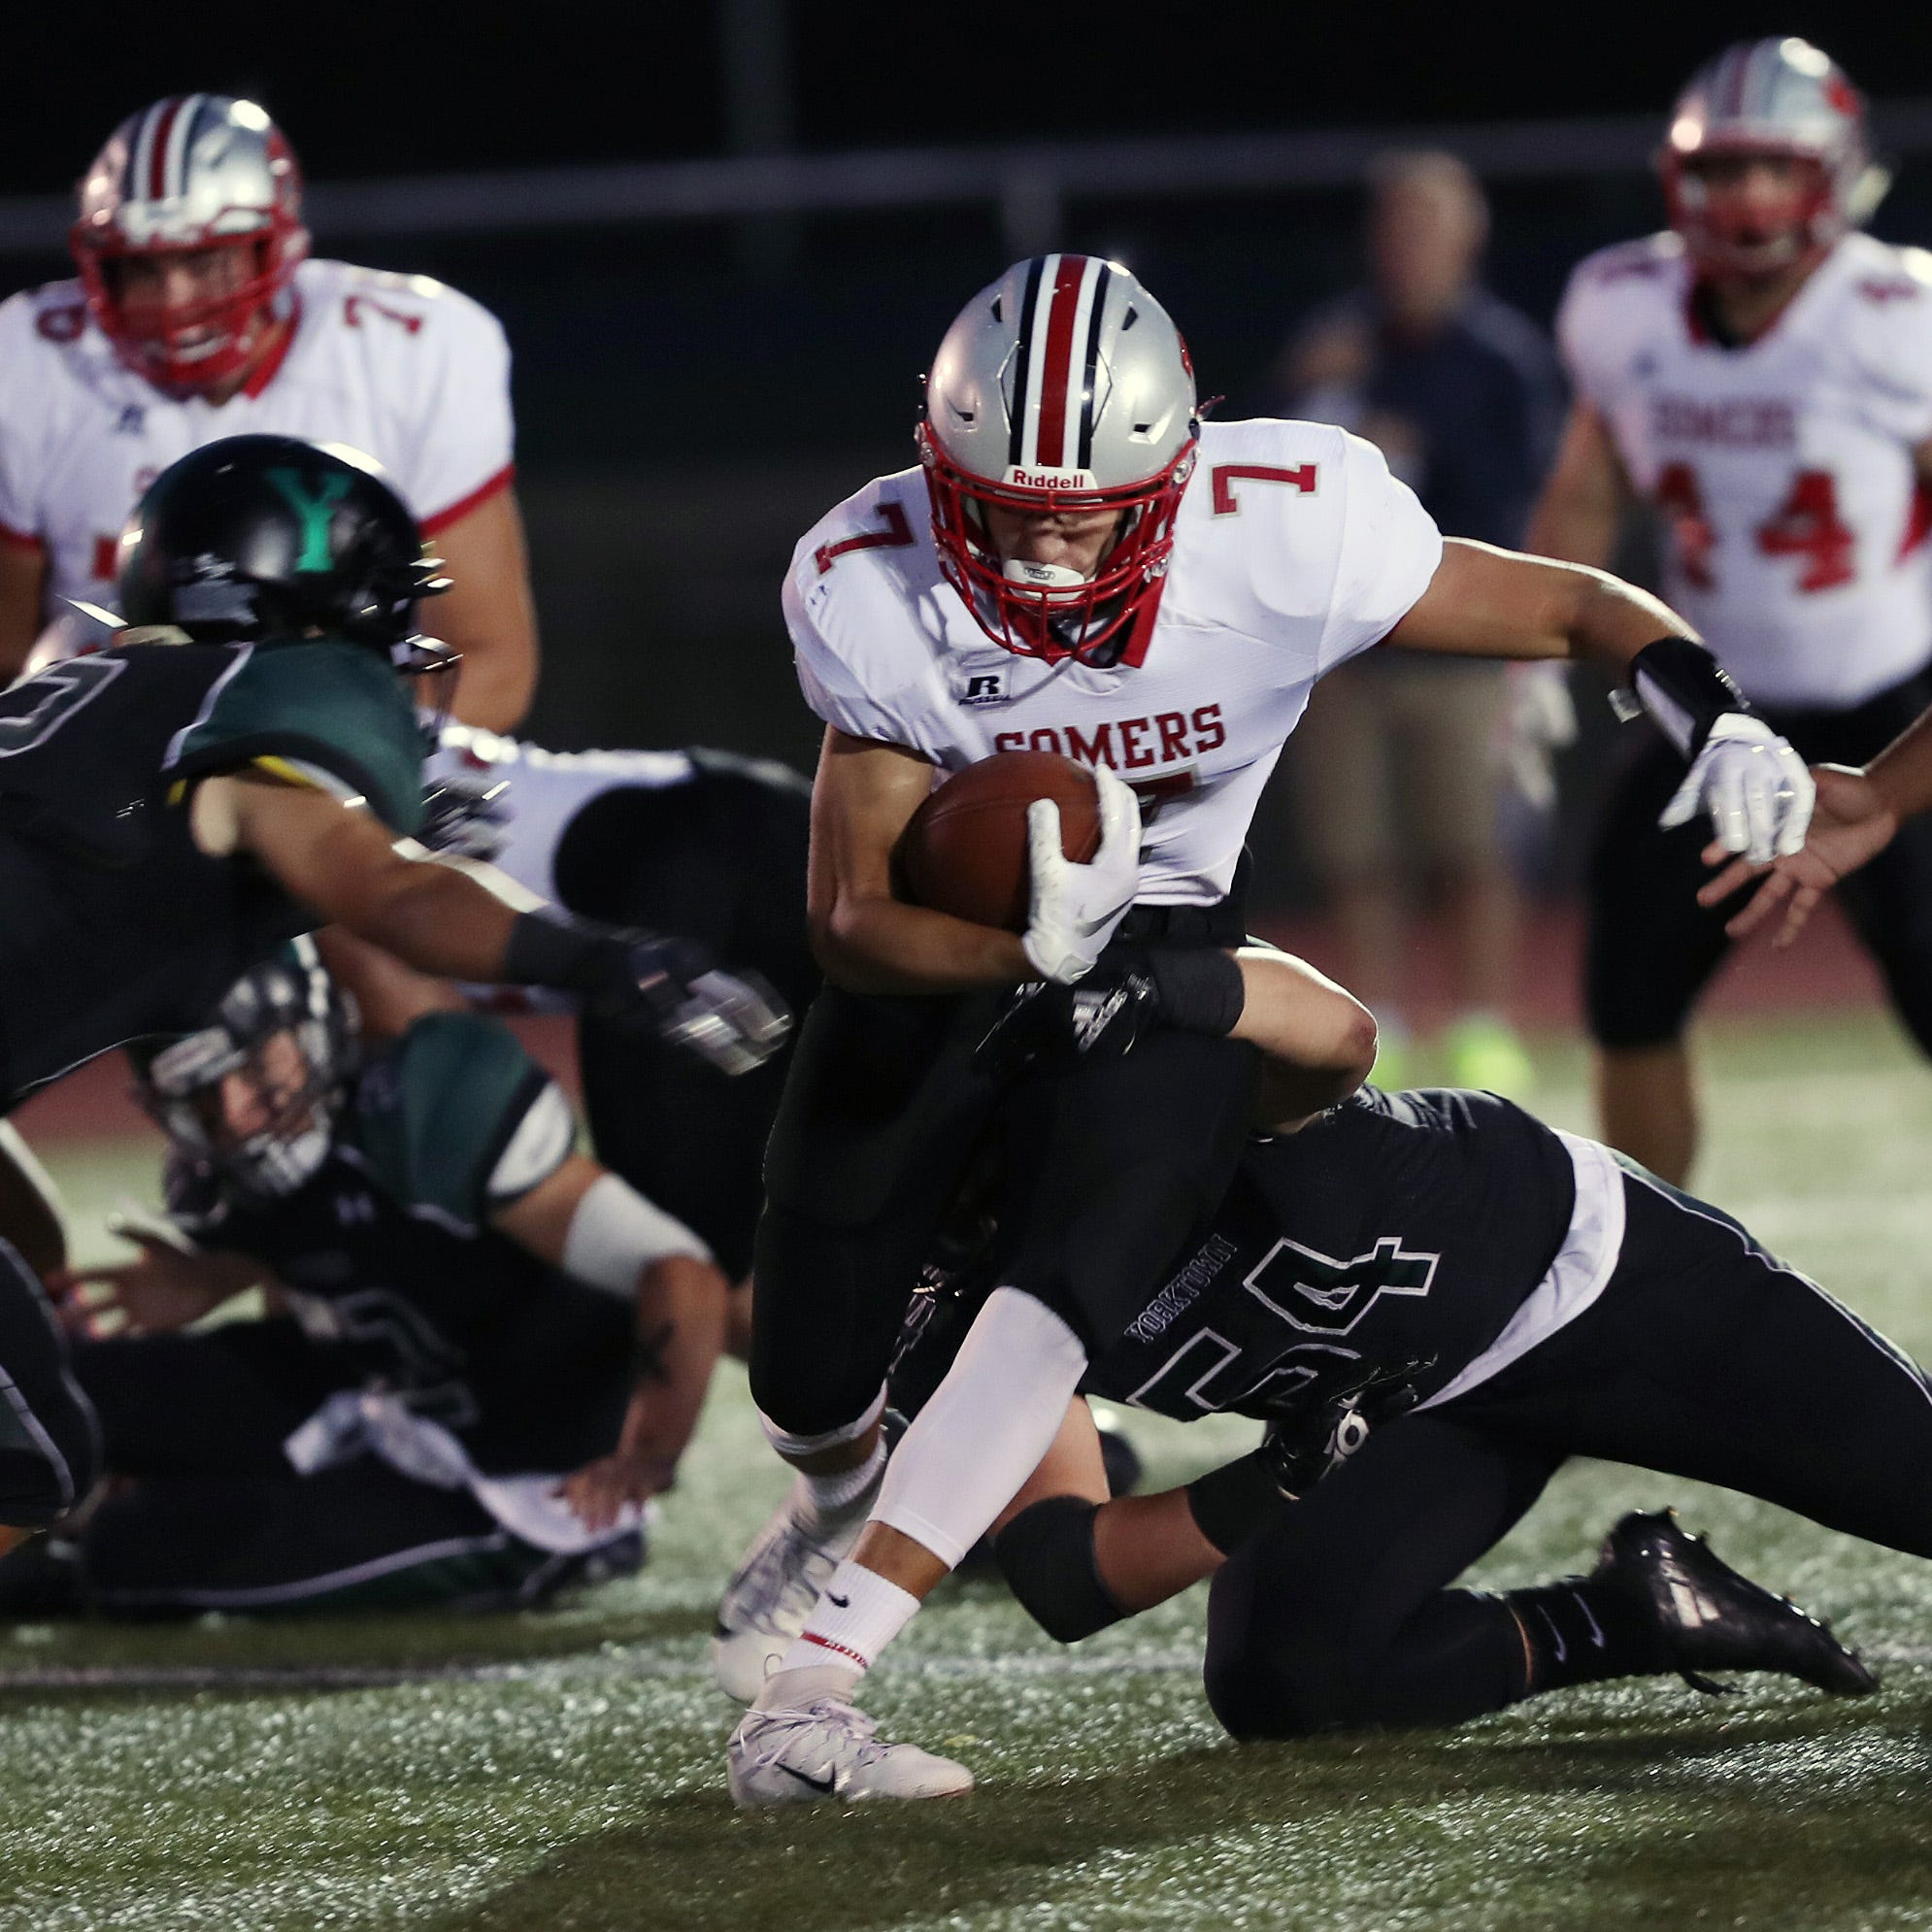 Football: Somers comes back and hands Yorktown its first loss of the season